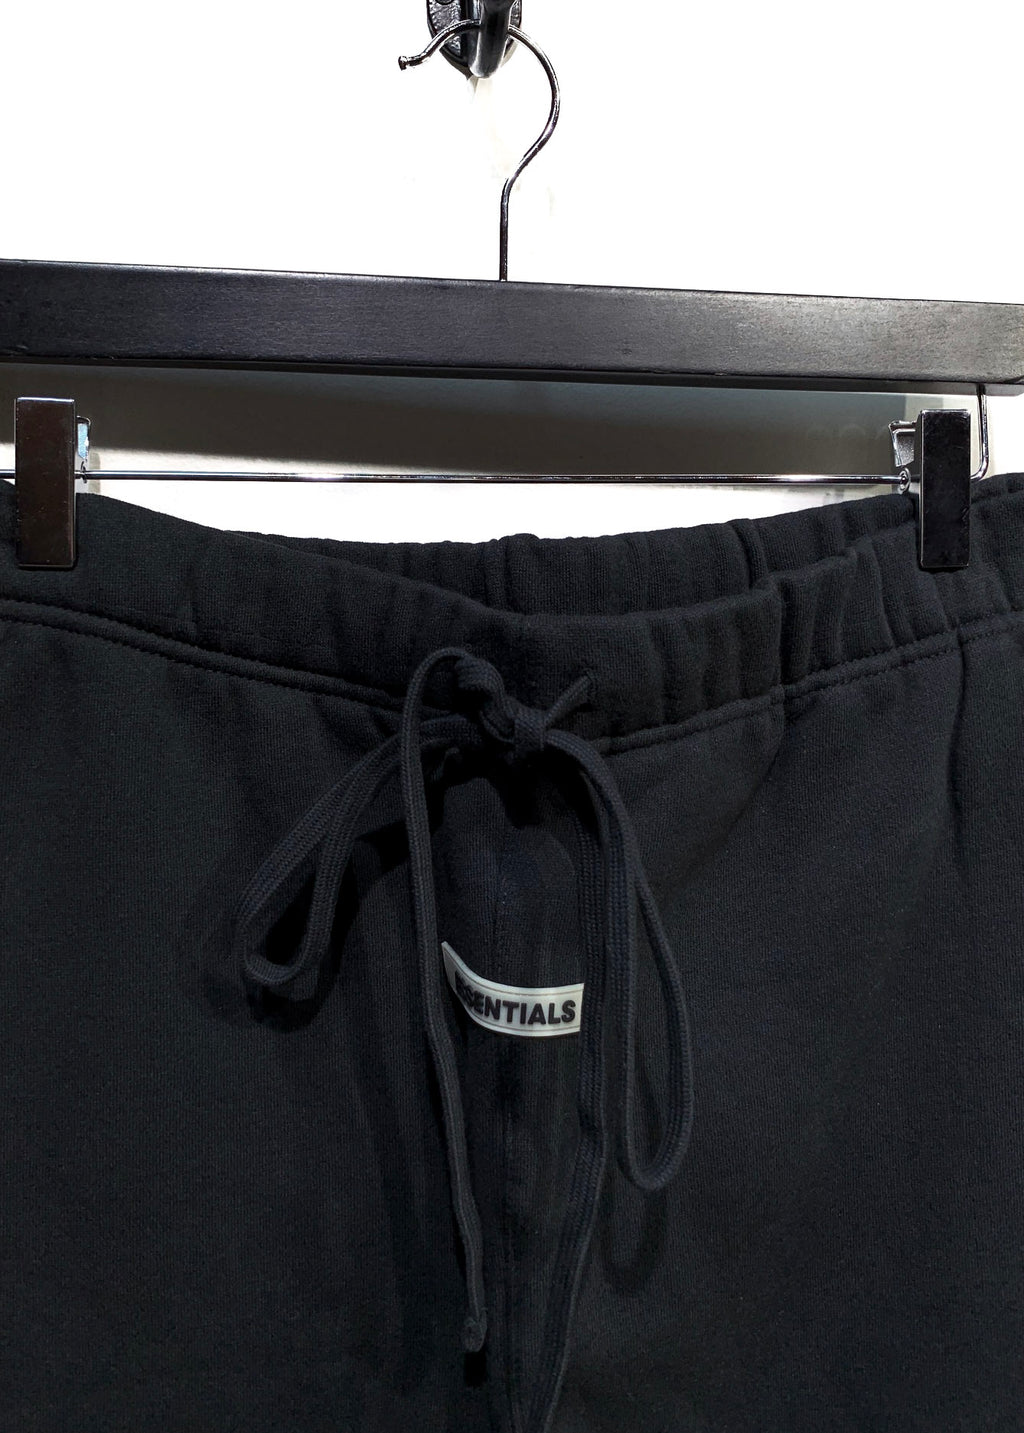 Essentials Fear of God Black Reflective Fleece Sweatpants